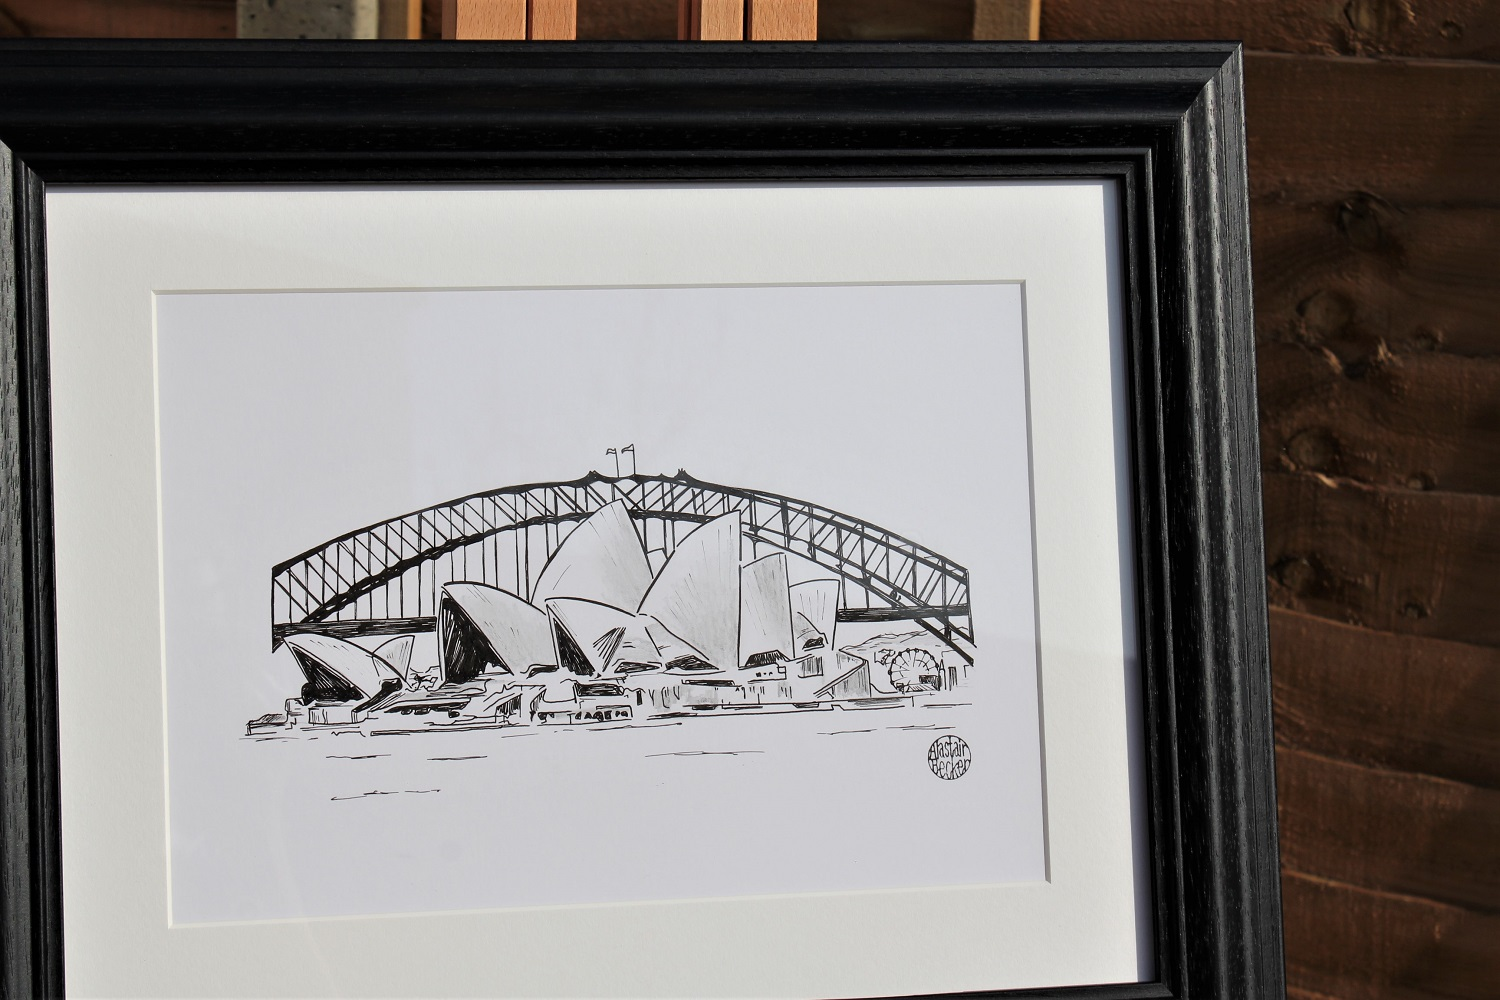 Sydney  - 1 of 5 commissioned artworks for a couple to remember their travels around the world.